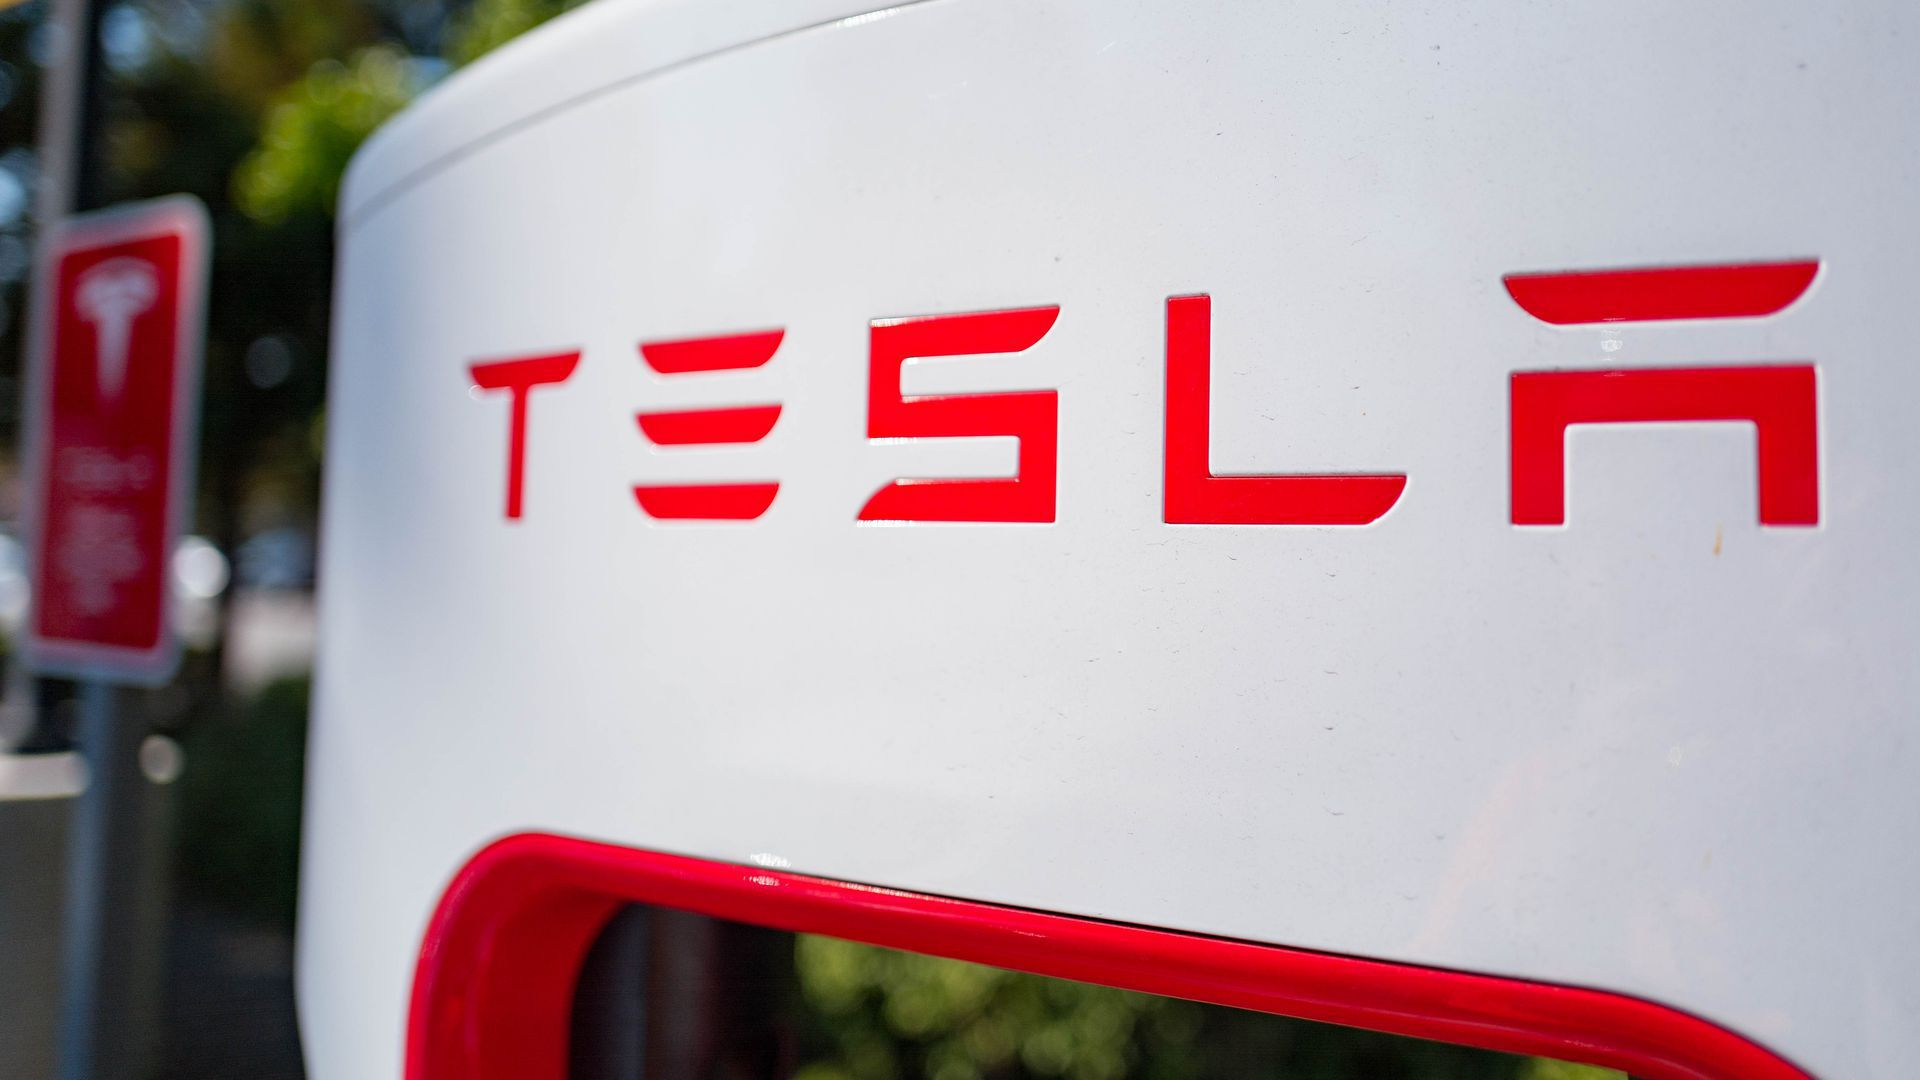 Close-up photo of the Tesla logo at a Supercharger station